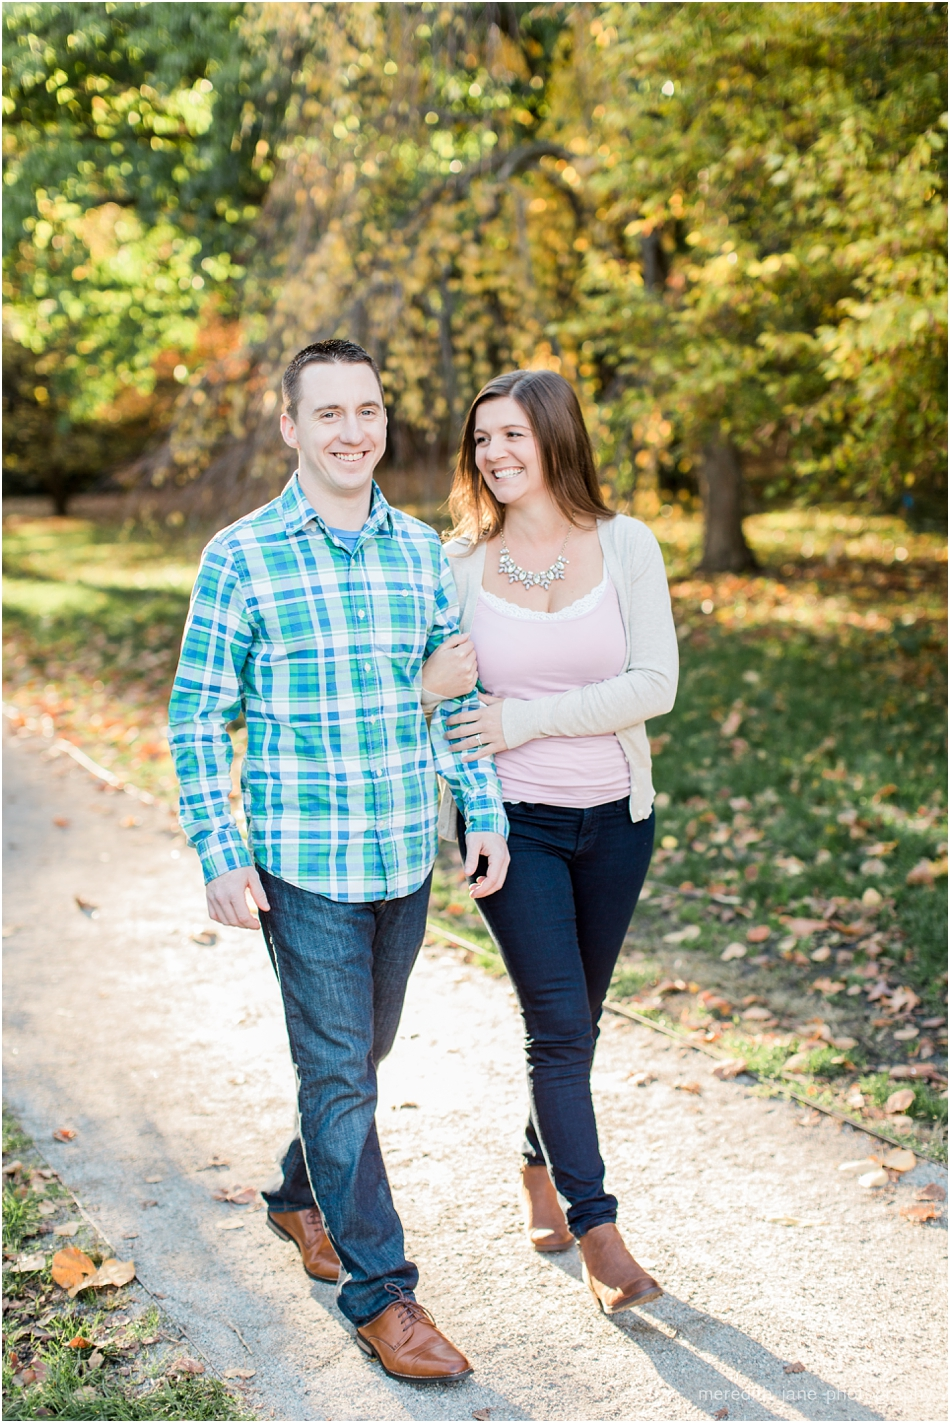 boston_massachusetts_engagment_arnold_arboretum_fall_foliage_cape_cod_wedding_photographer_meredith_jane_photography_photo_0933